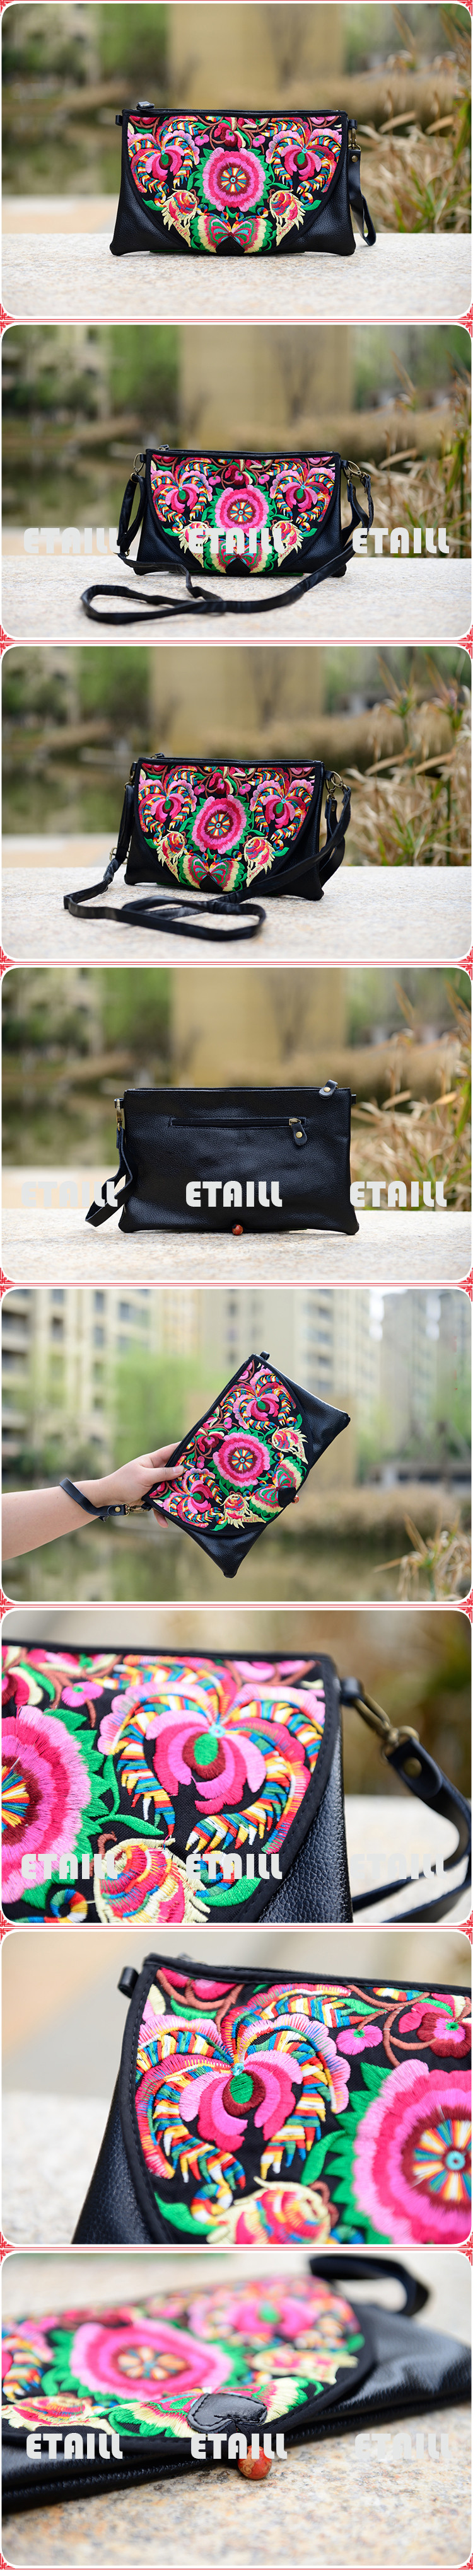 Embroidered Floral Bags